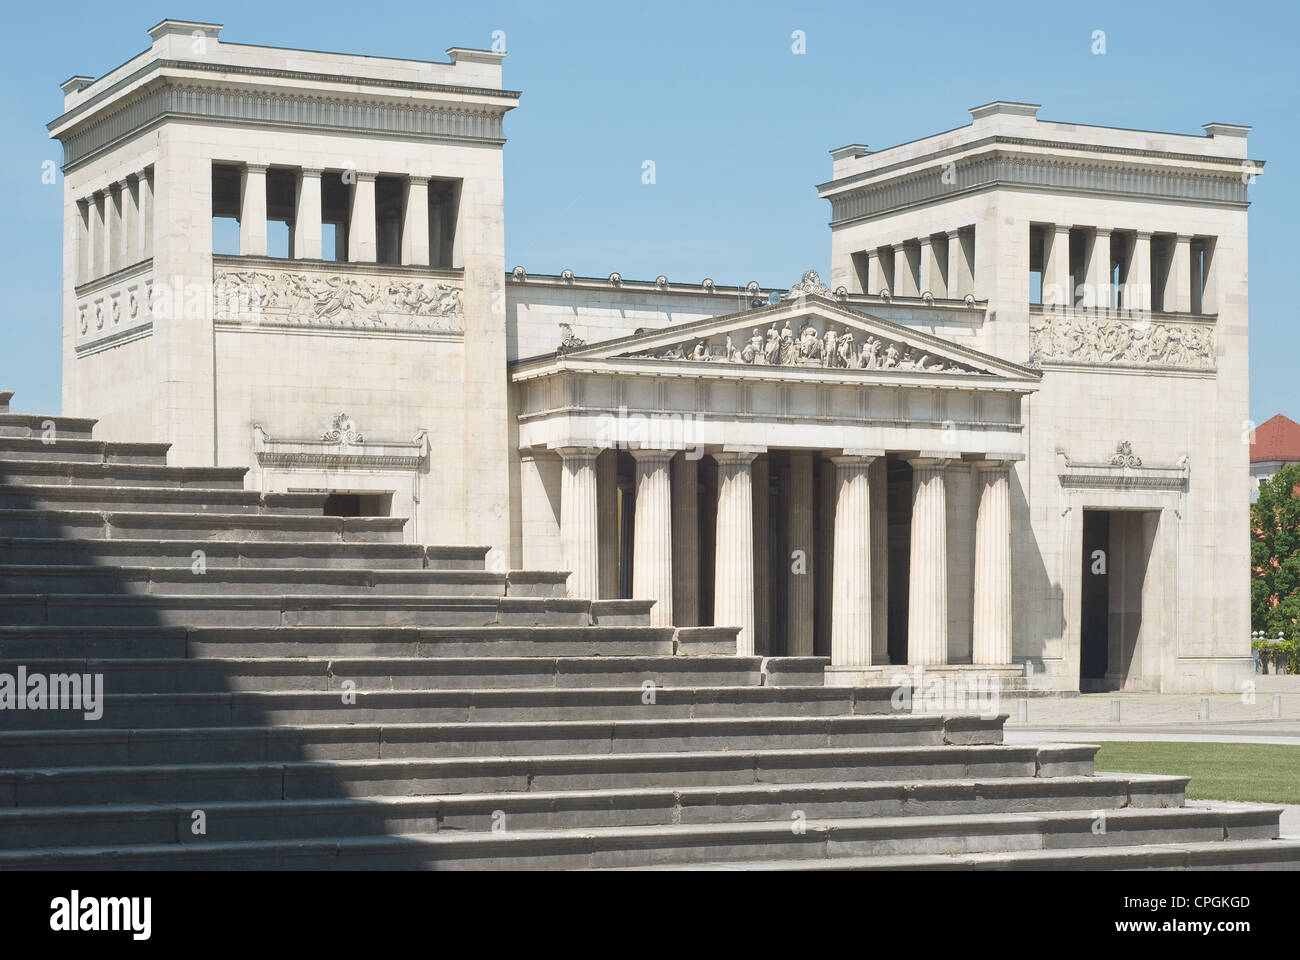 Classical Greek Architecture with Steps in the Italian style Stock